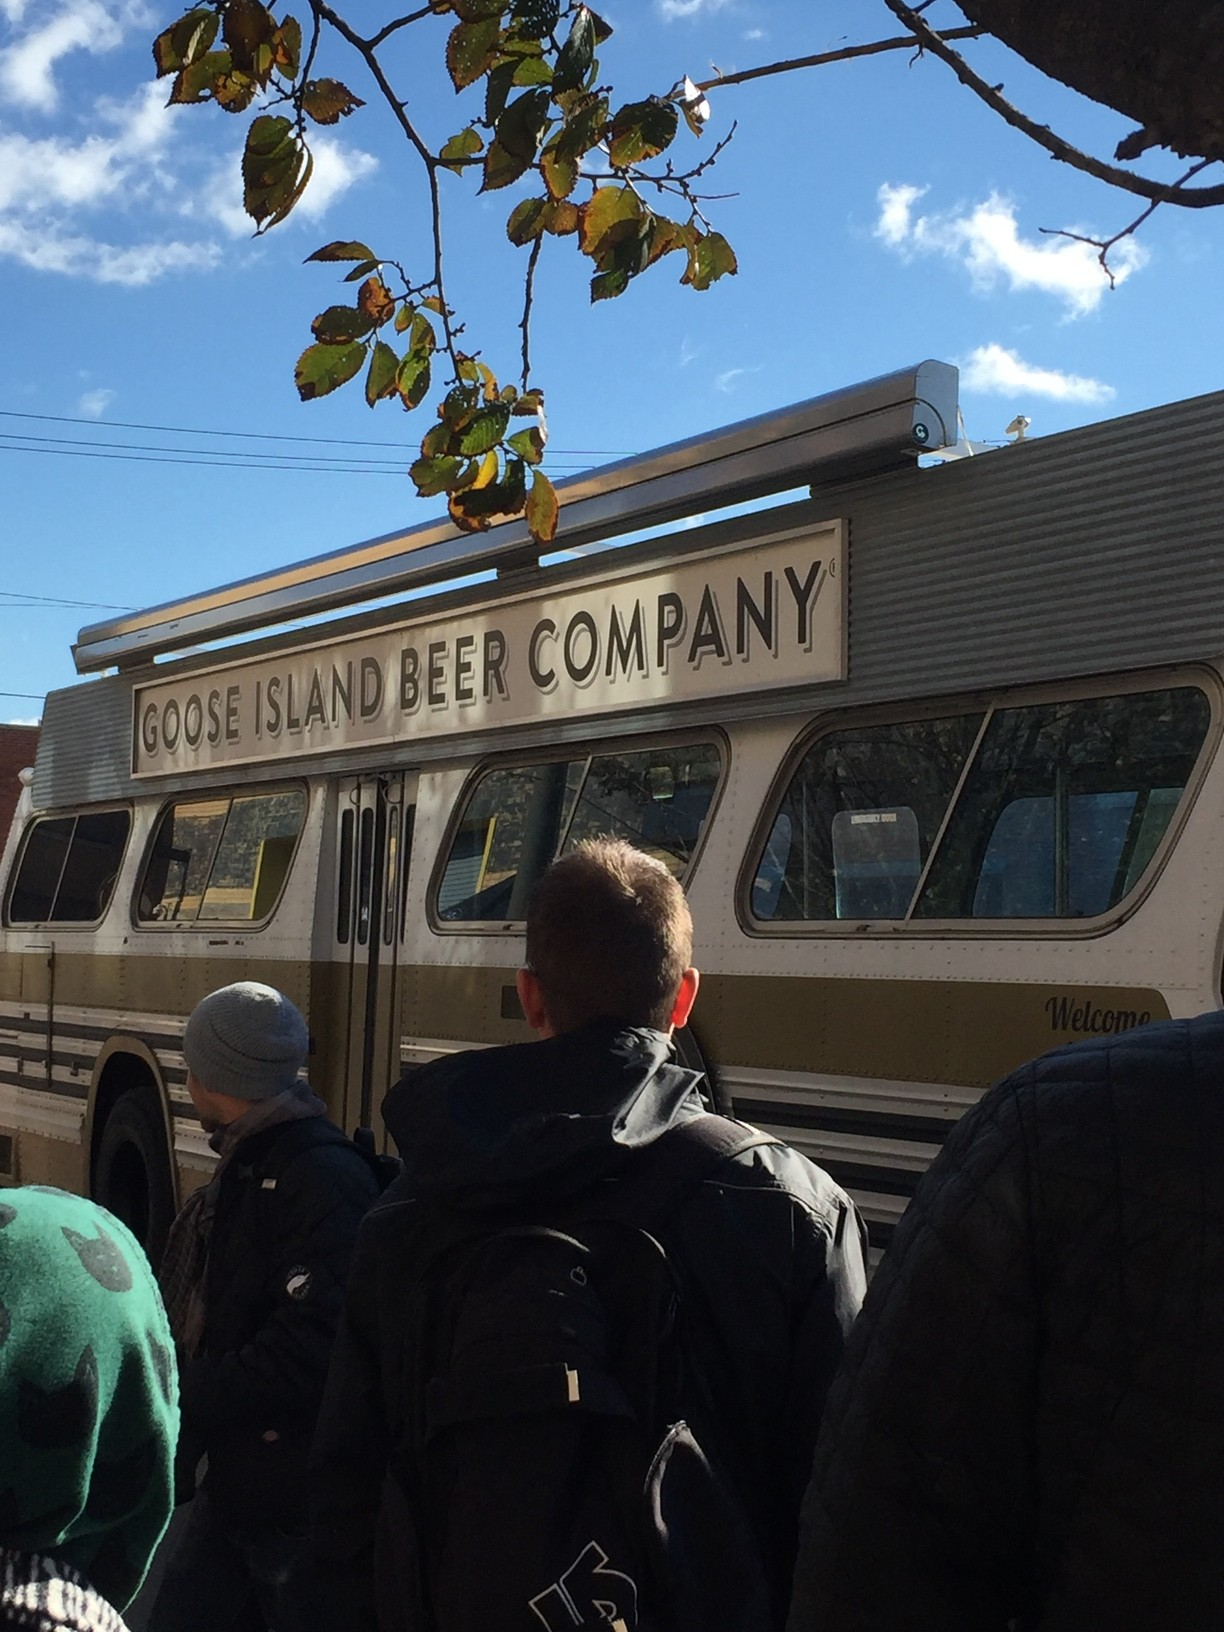 The official Goose Island bus.